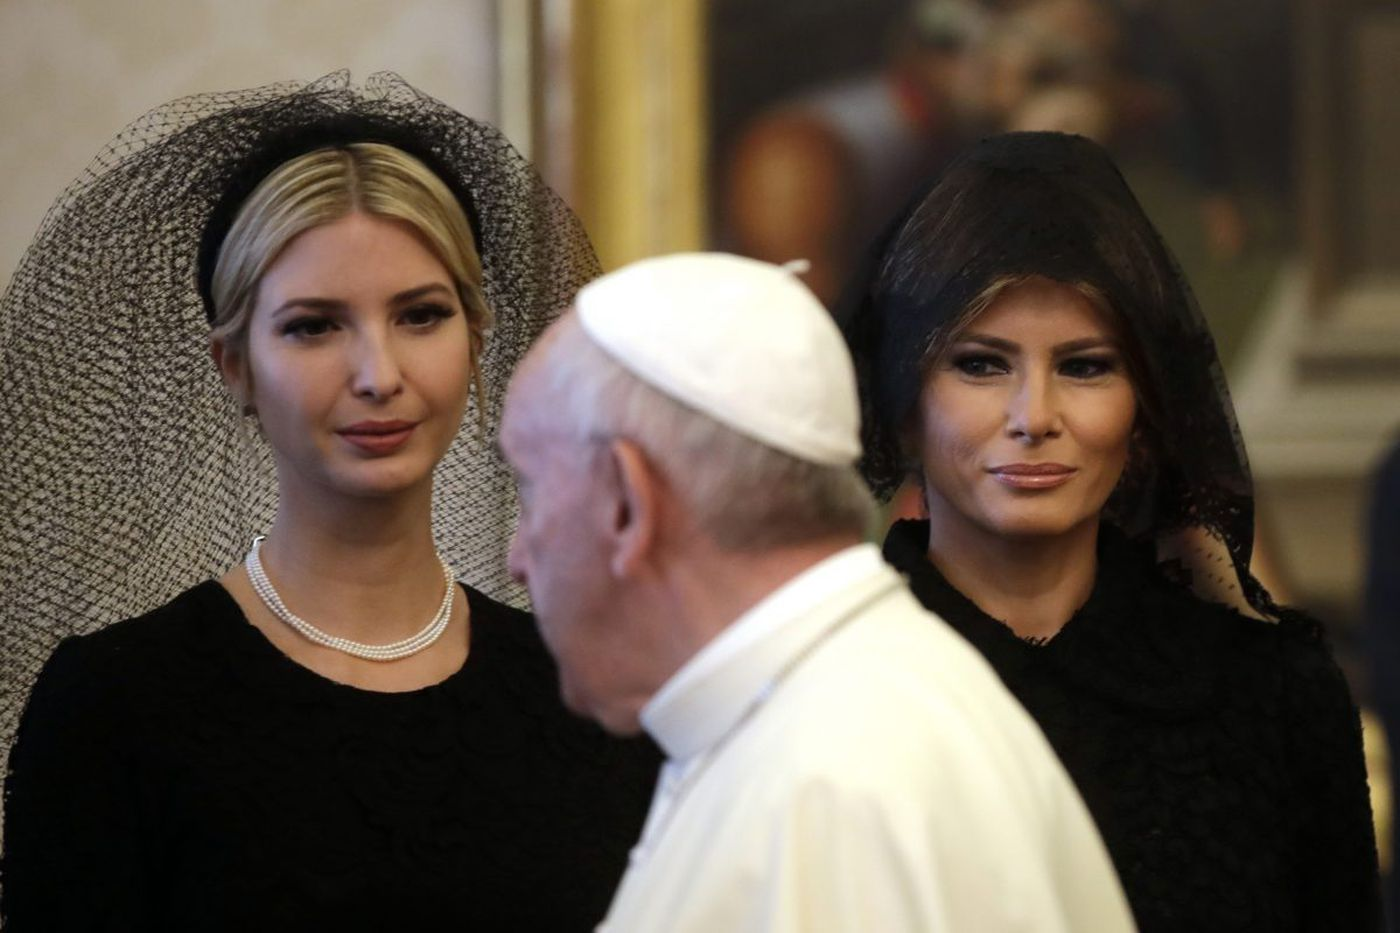 The mystery behind the Trump women's black veils for the papal visit